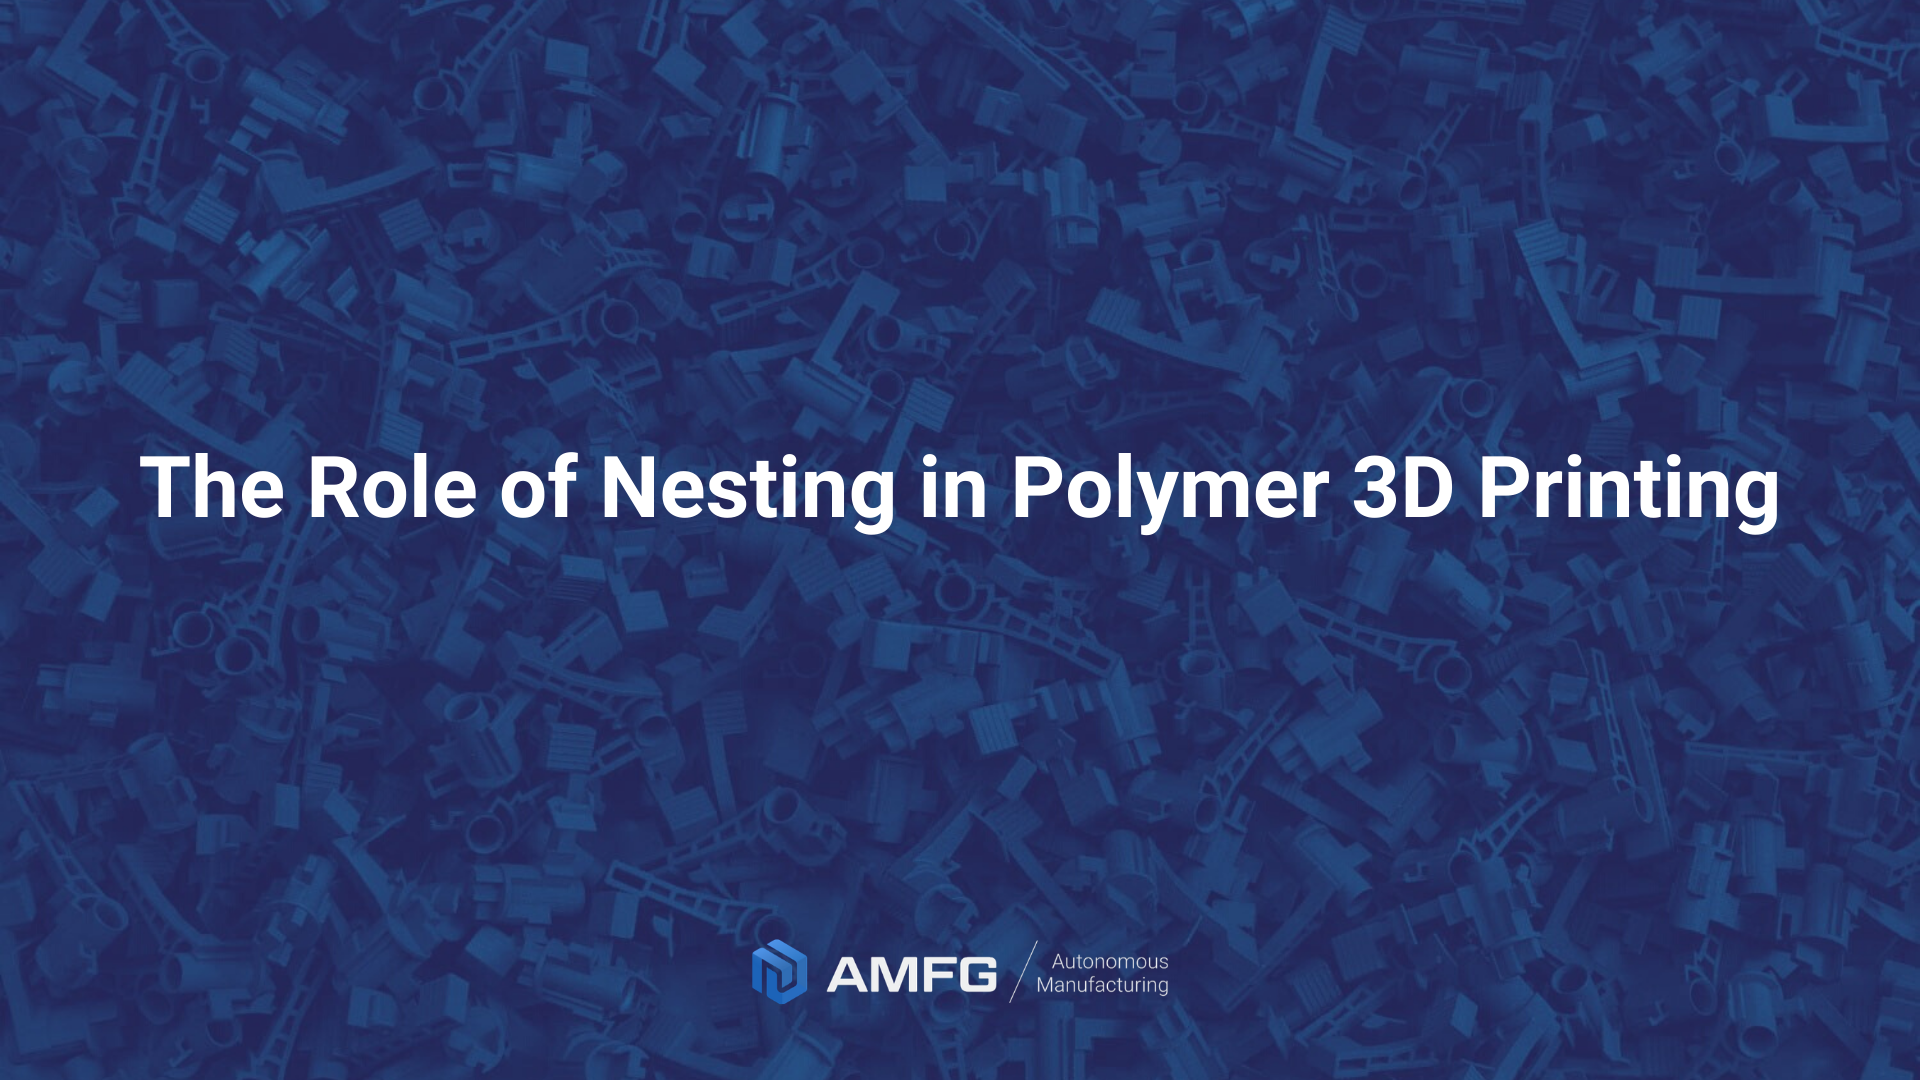 The Role of Nesting in Polymer 3D Printing